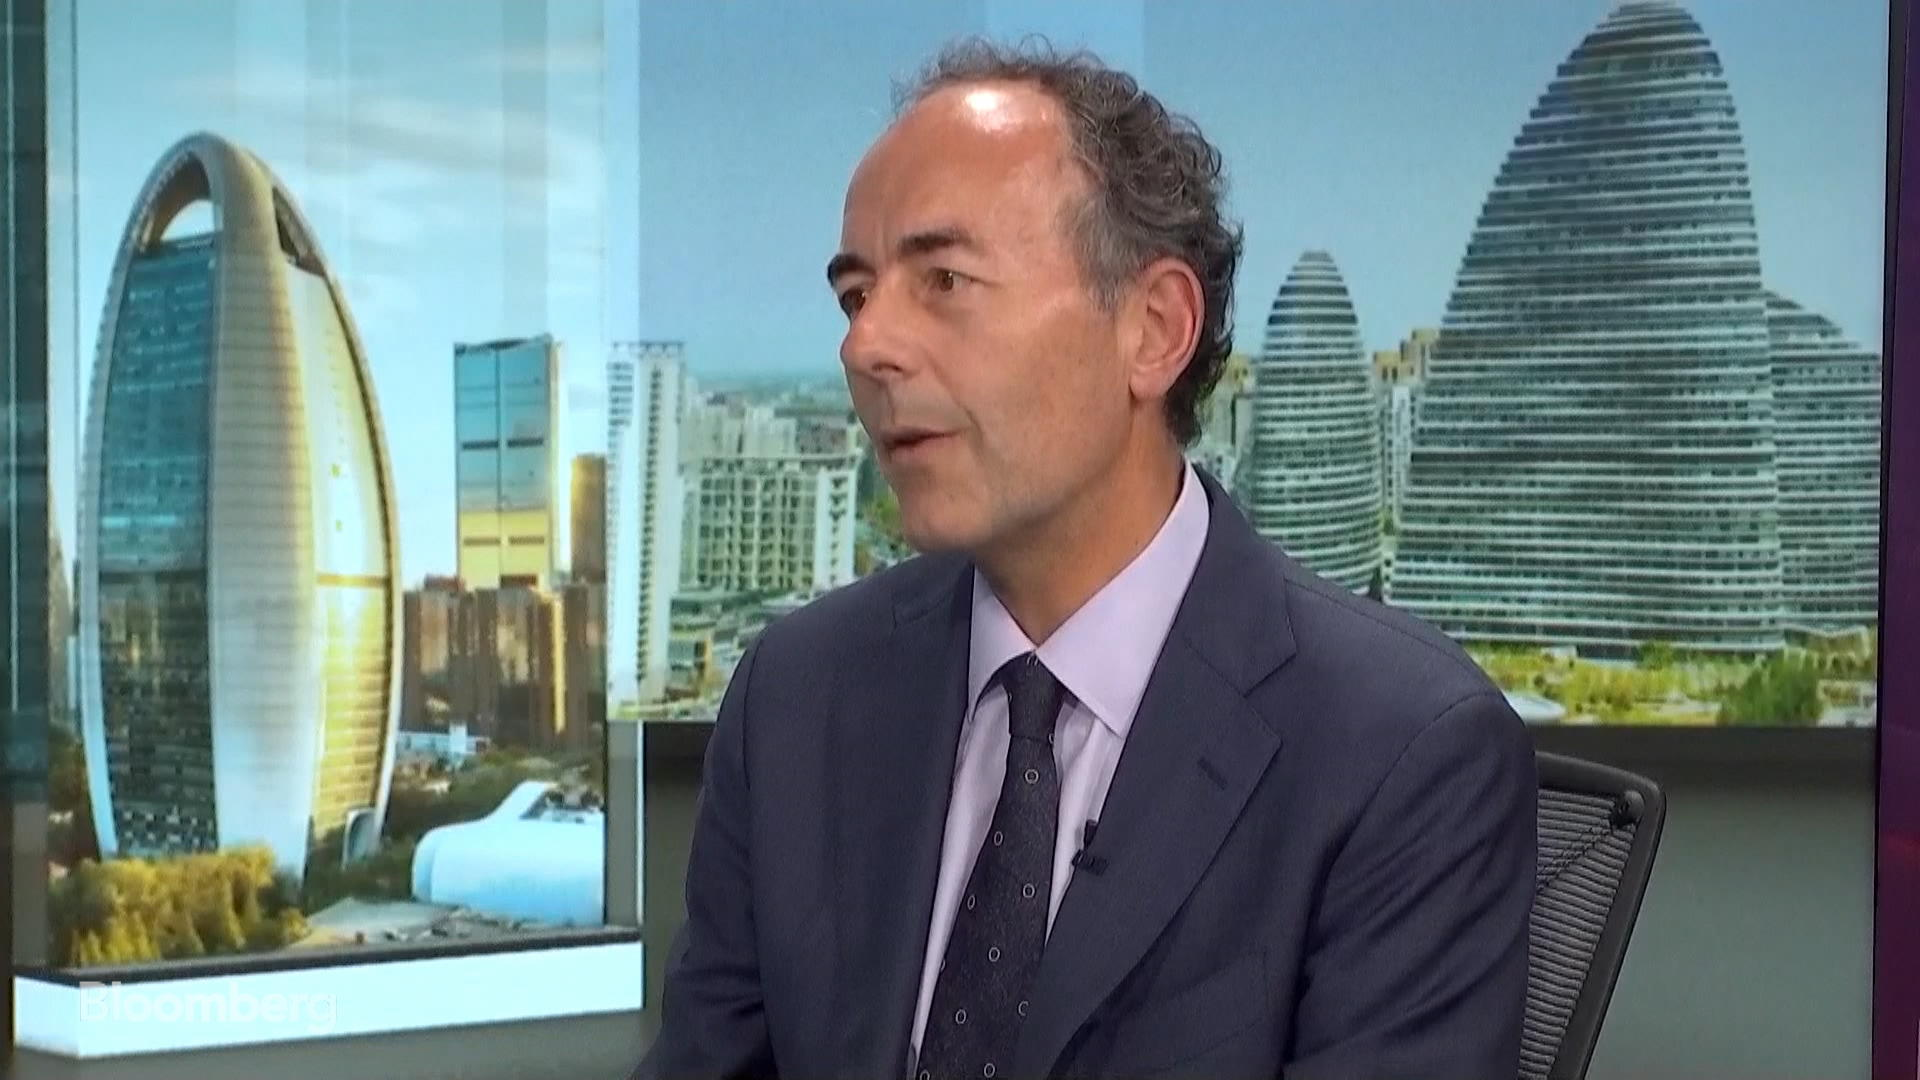 VanEck CEO Jan Van Eck on Expansion Opportunities in China